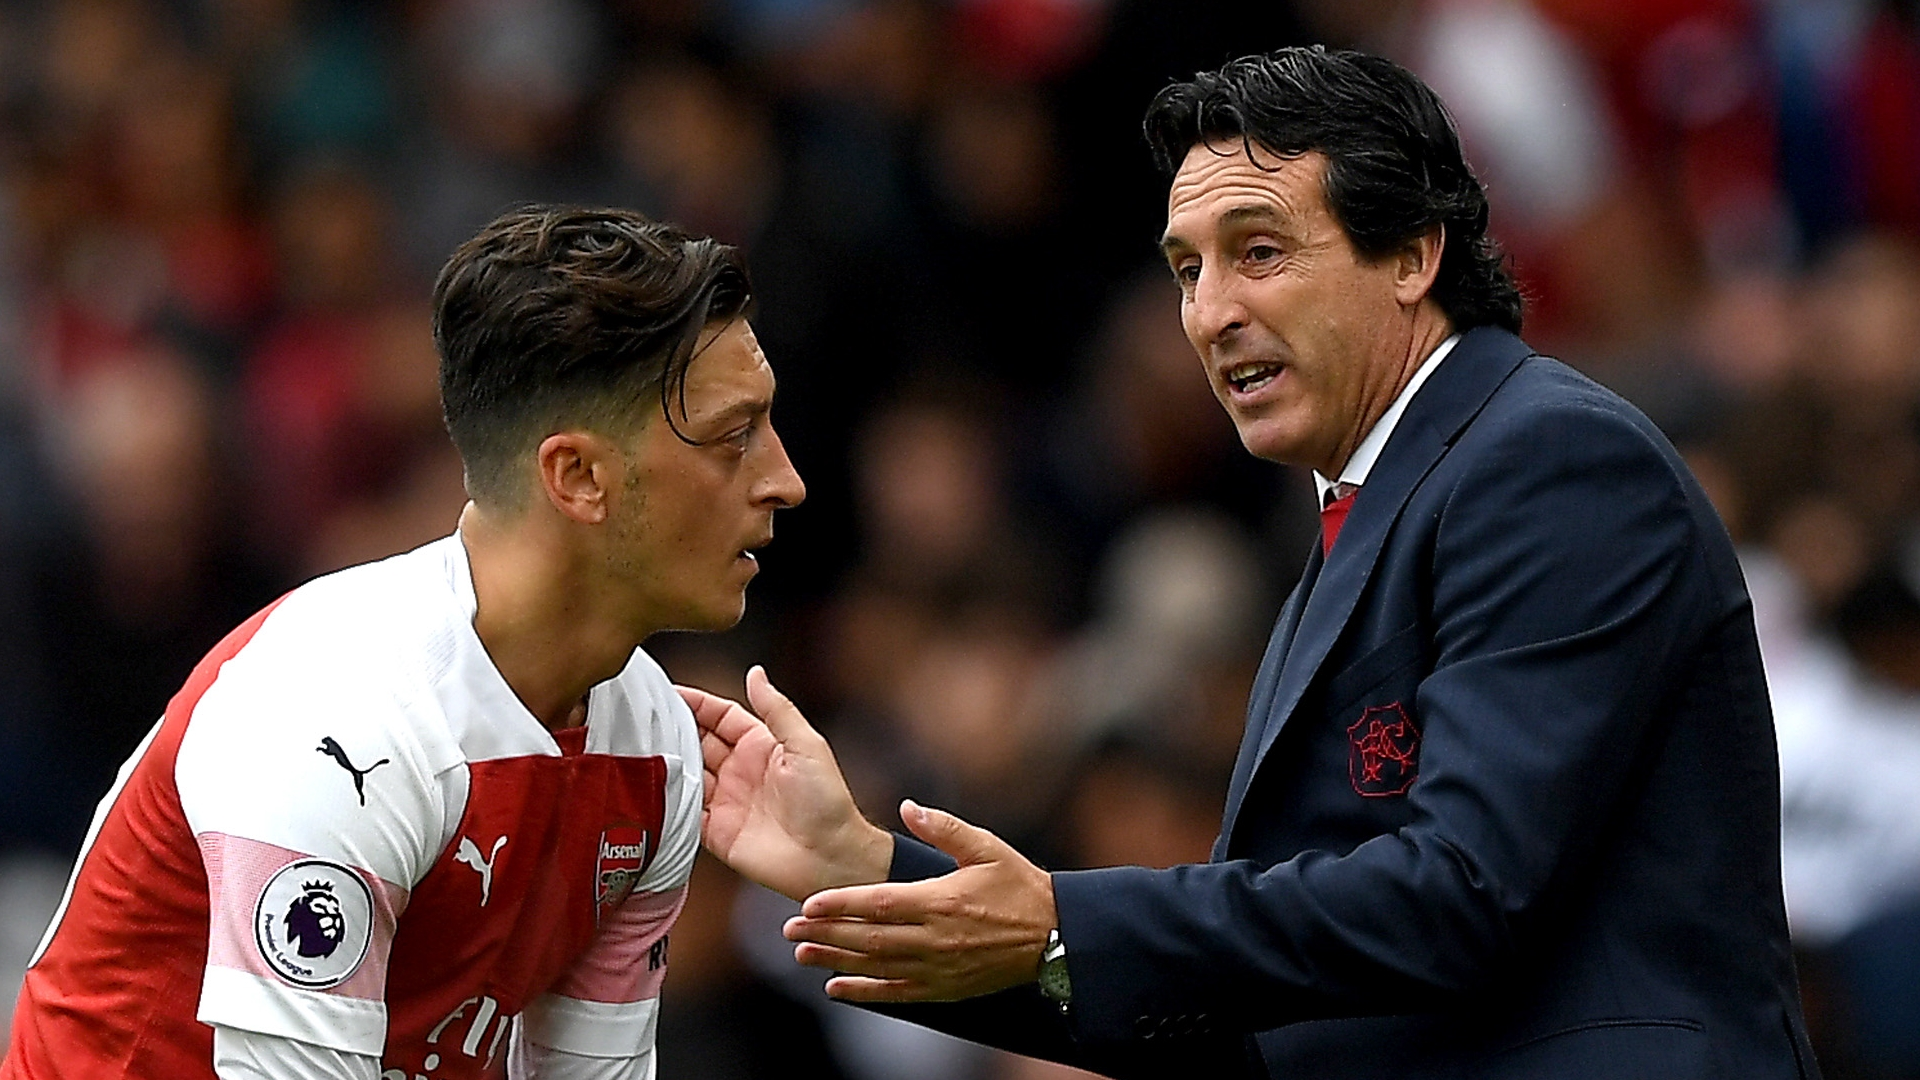 Emery lifts lid on final day at Arsenal